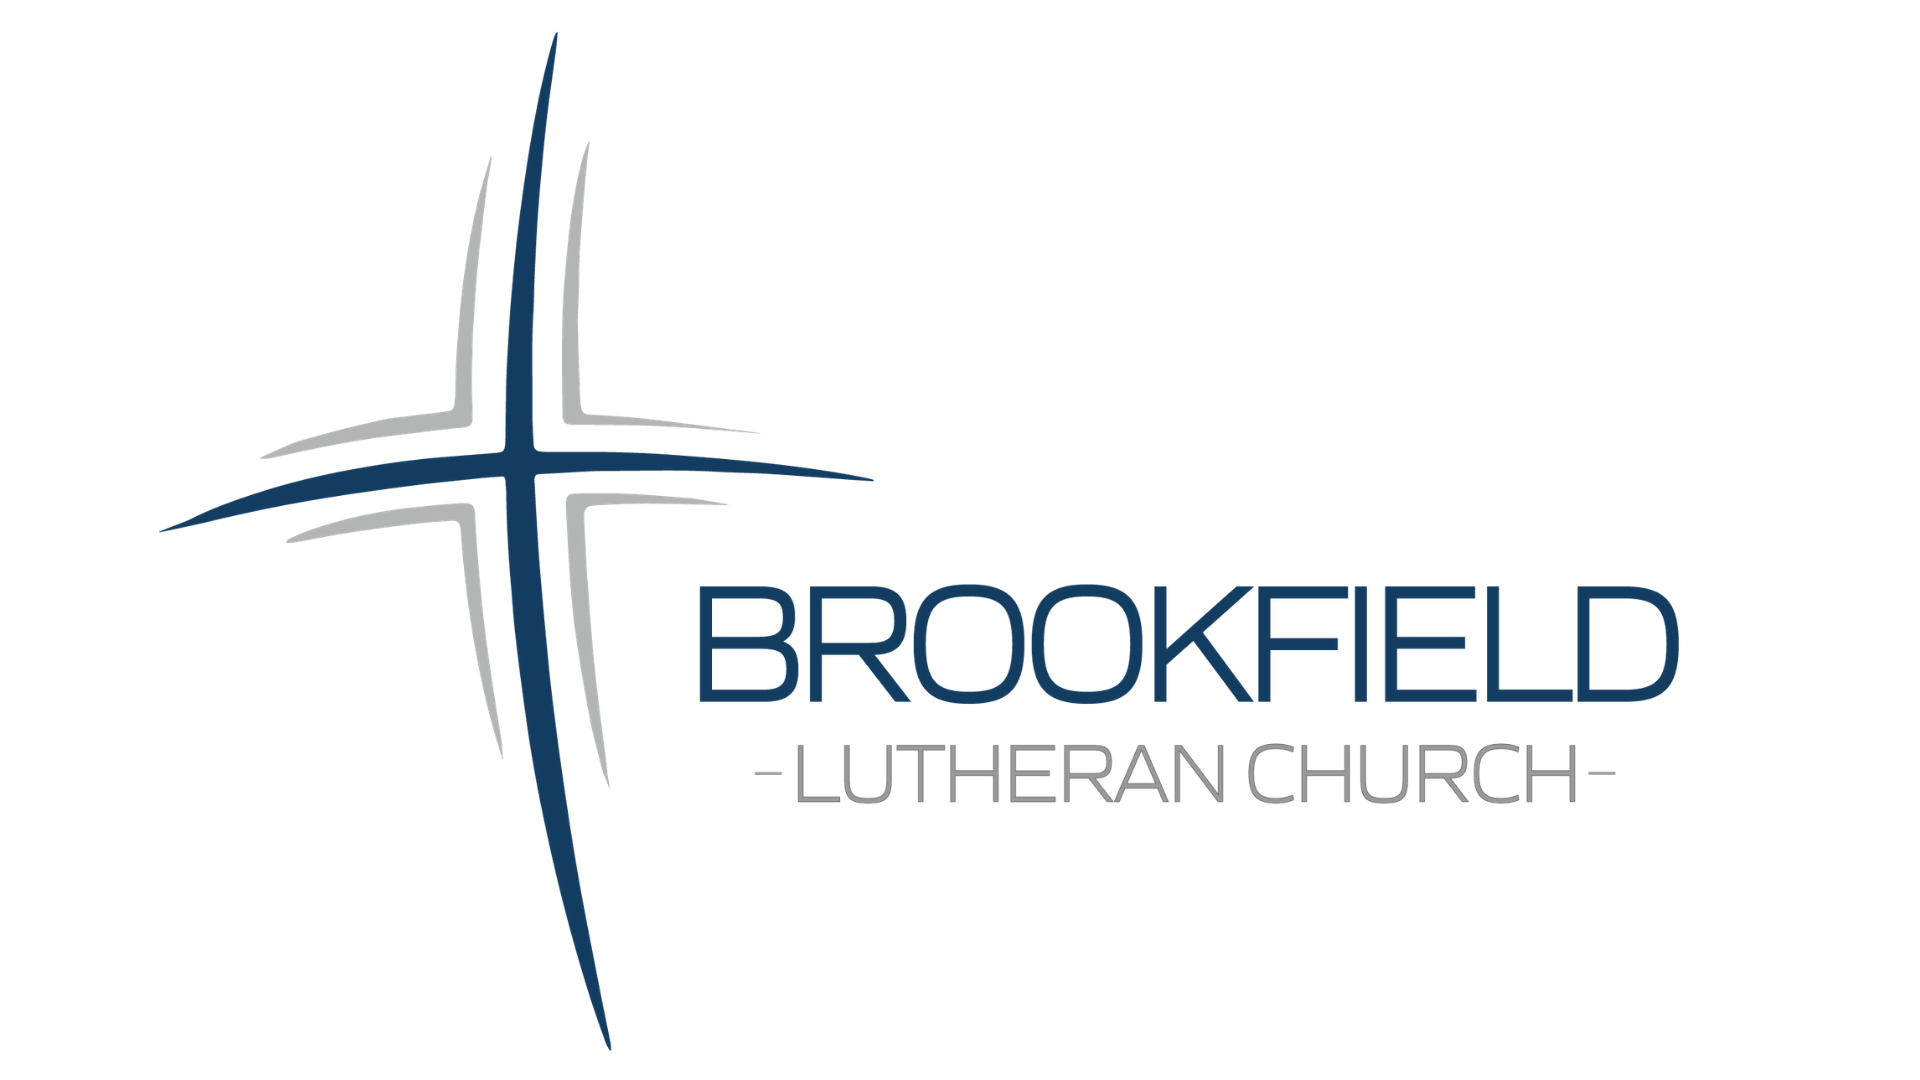 Brookfield Lutheran Church